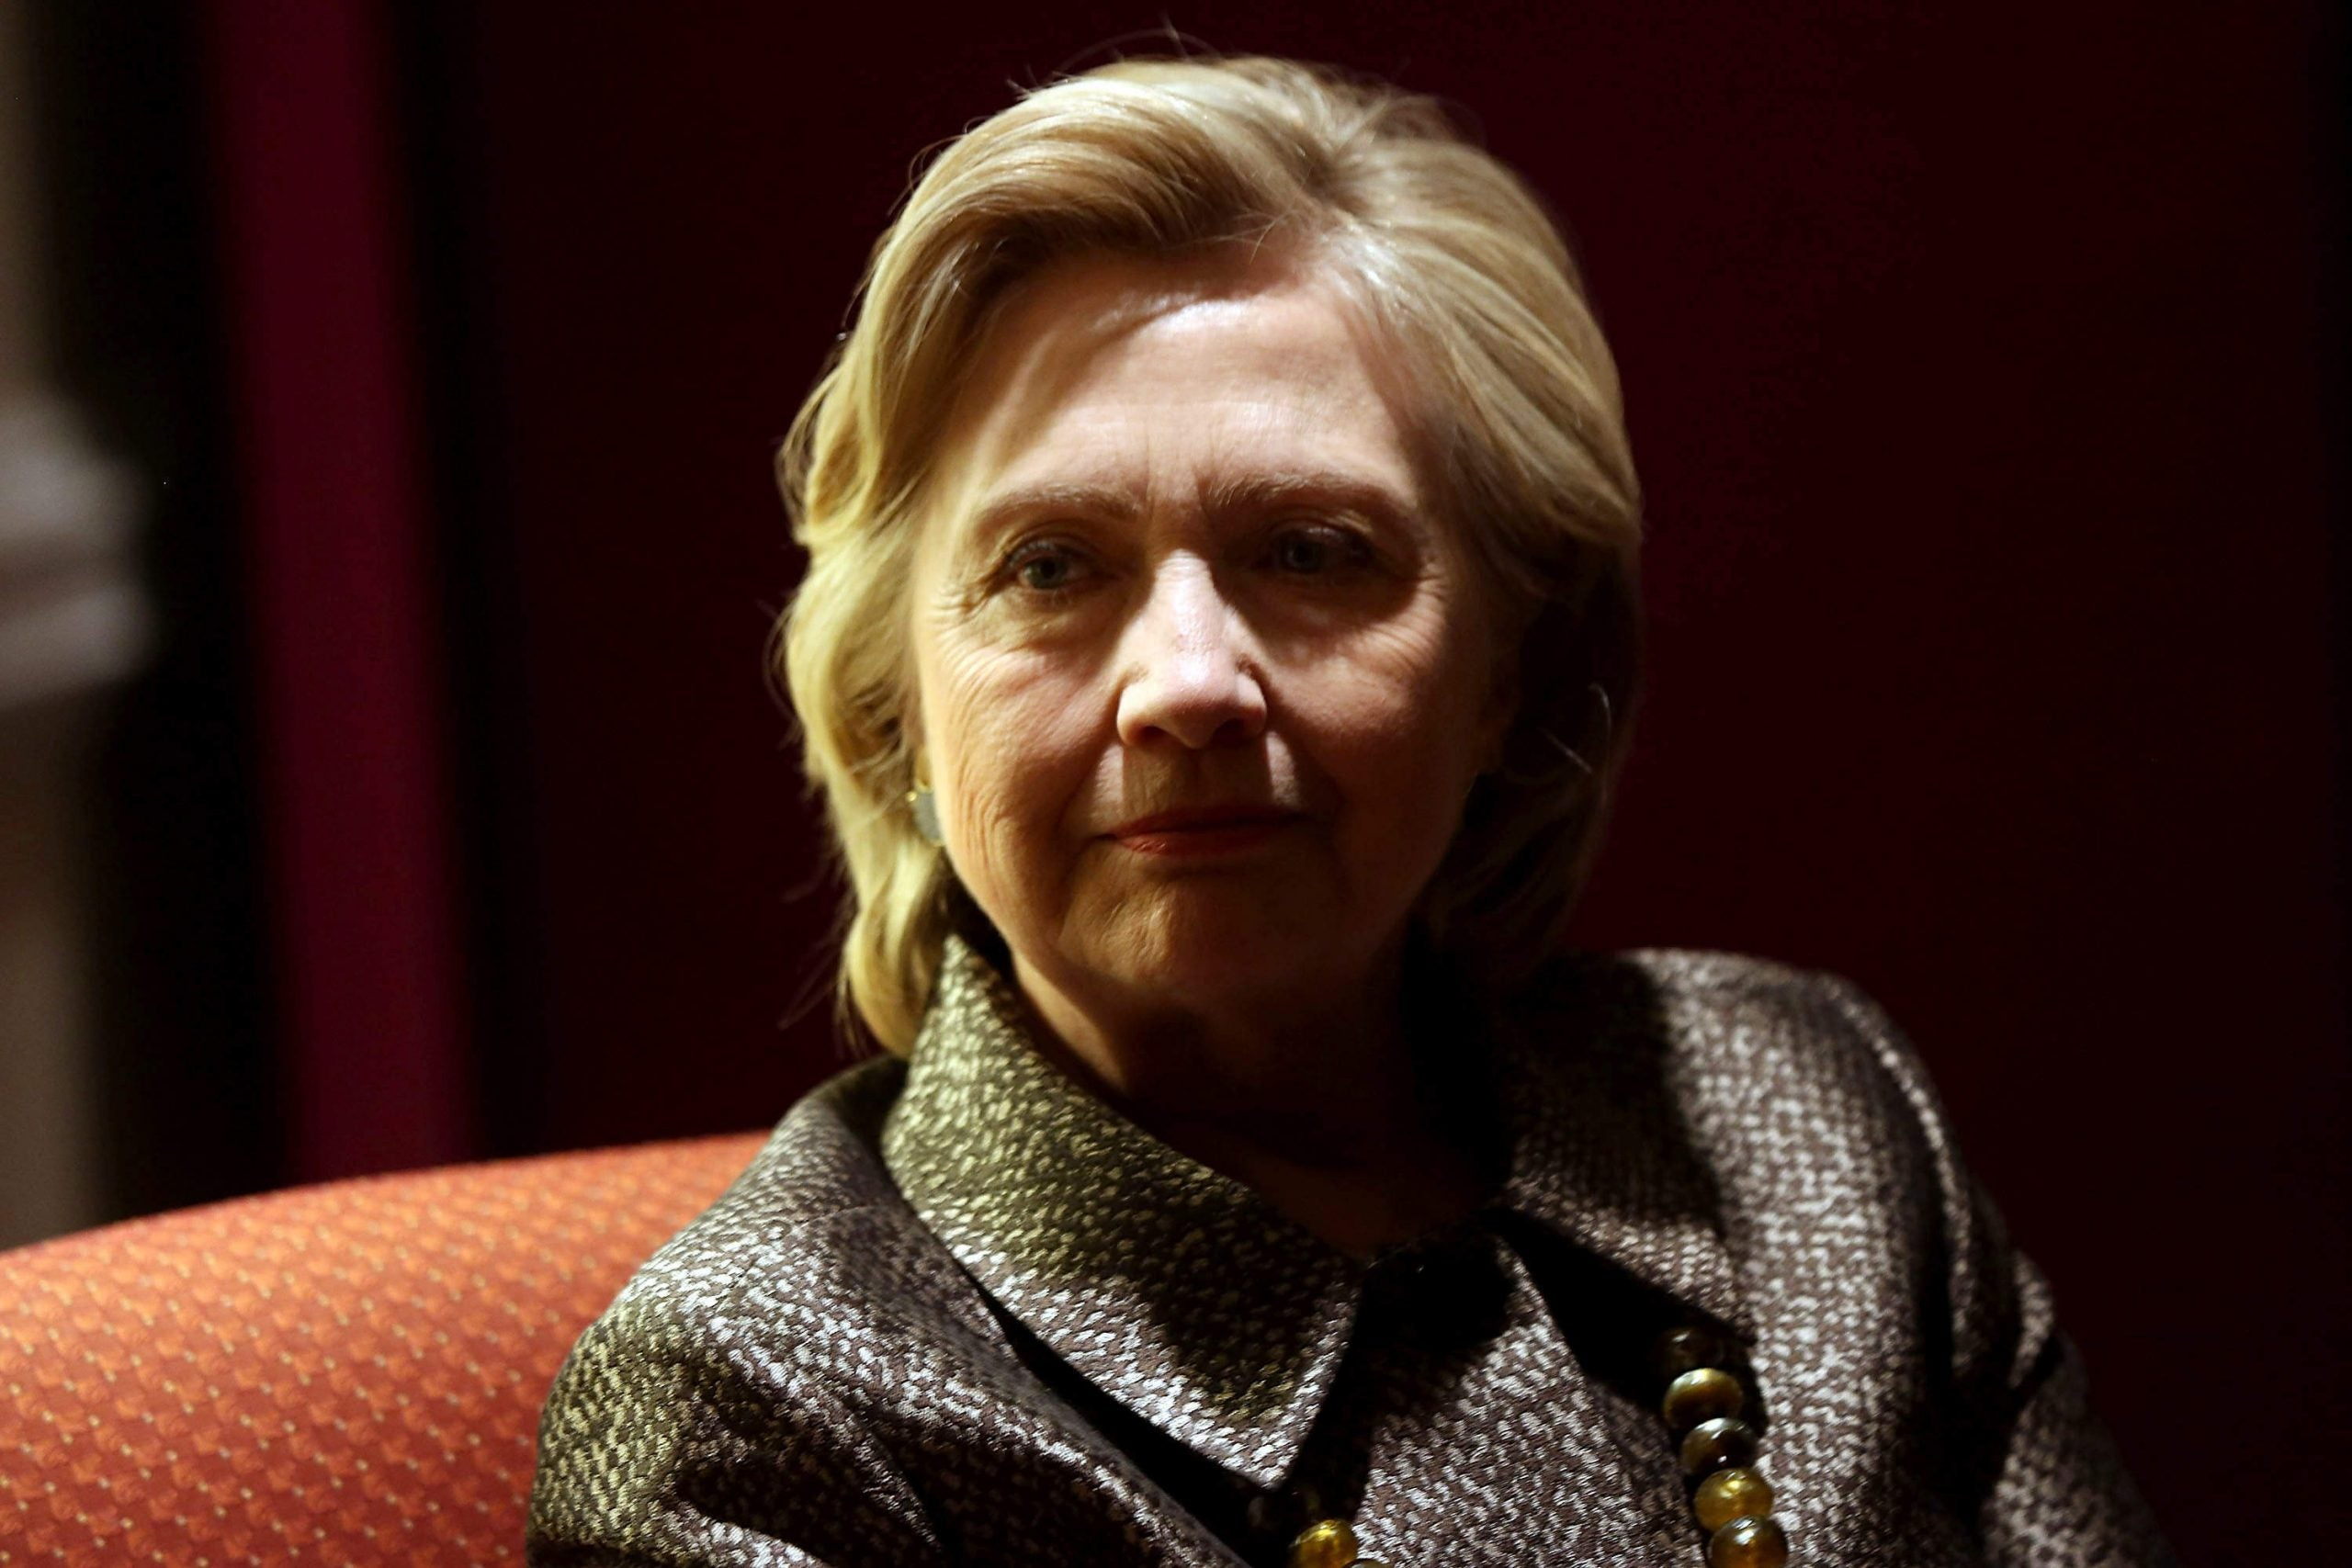 Though Hillary Clinton has flaws, I'll enjoy seeing her mash Donald Trump into a smear of hair tonic